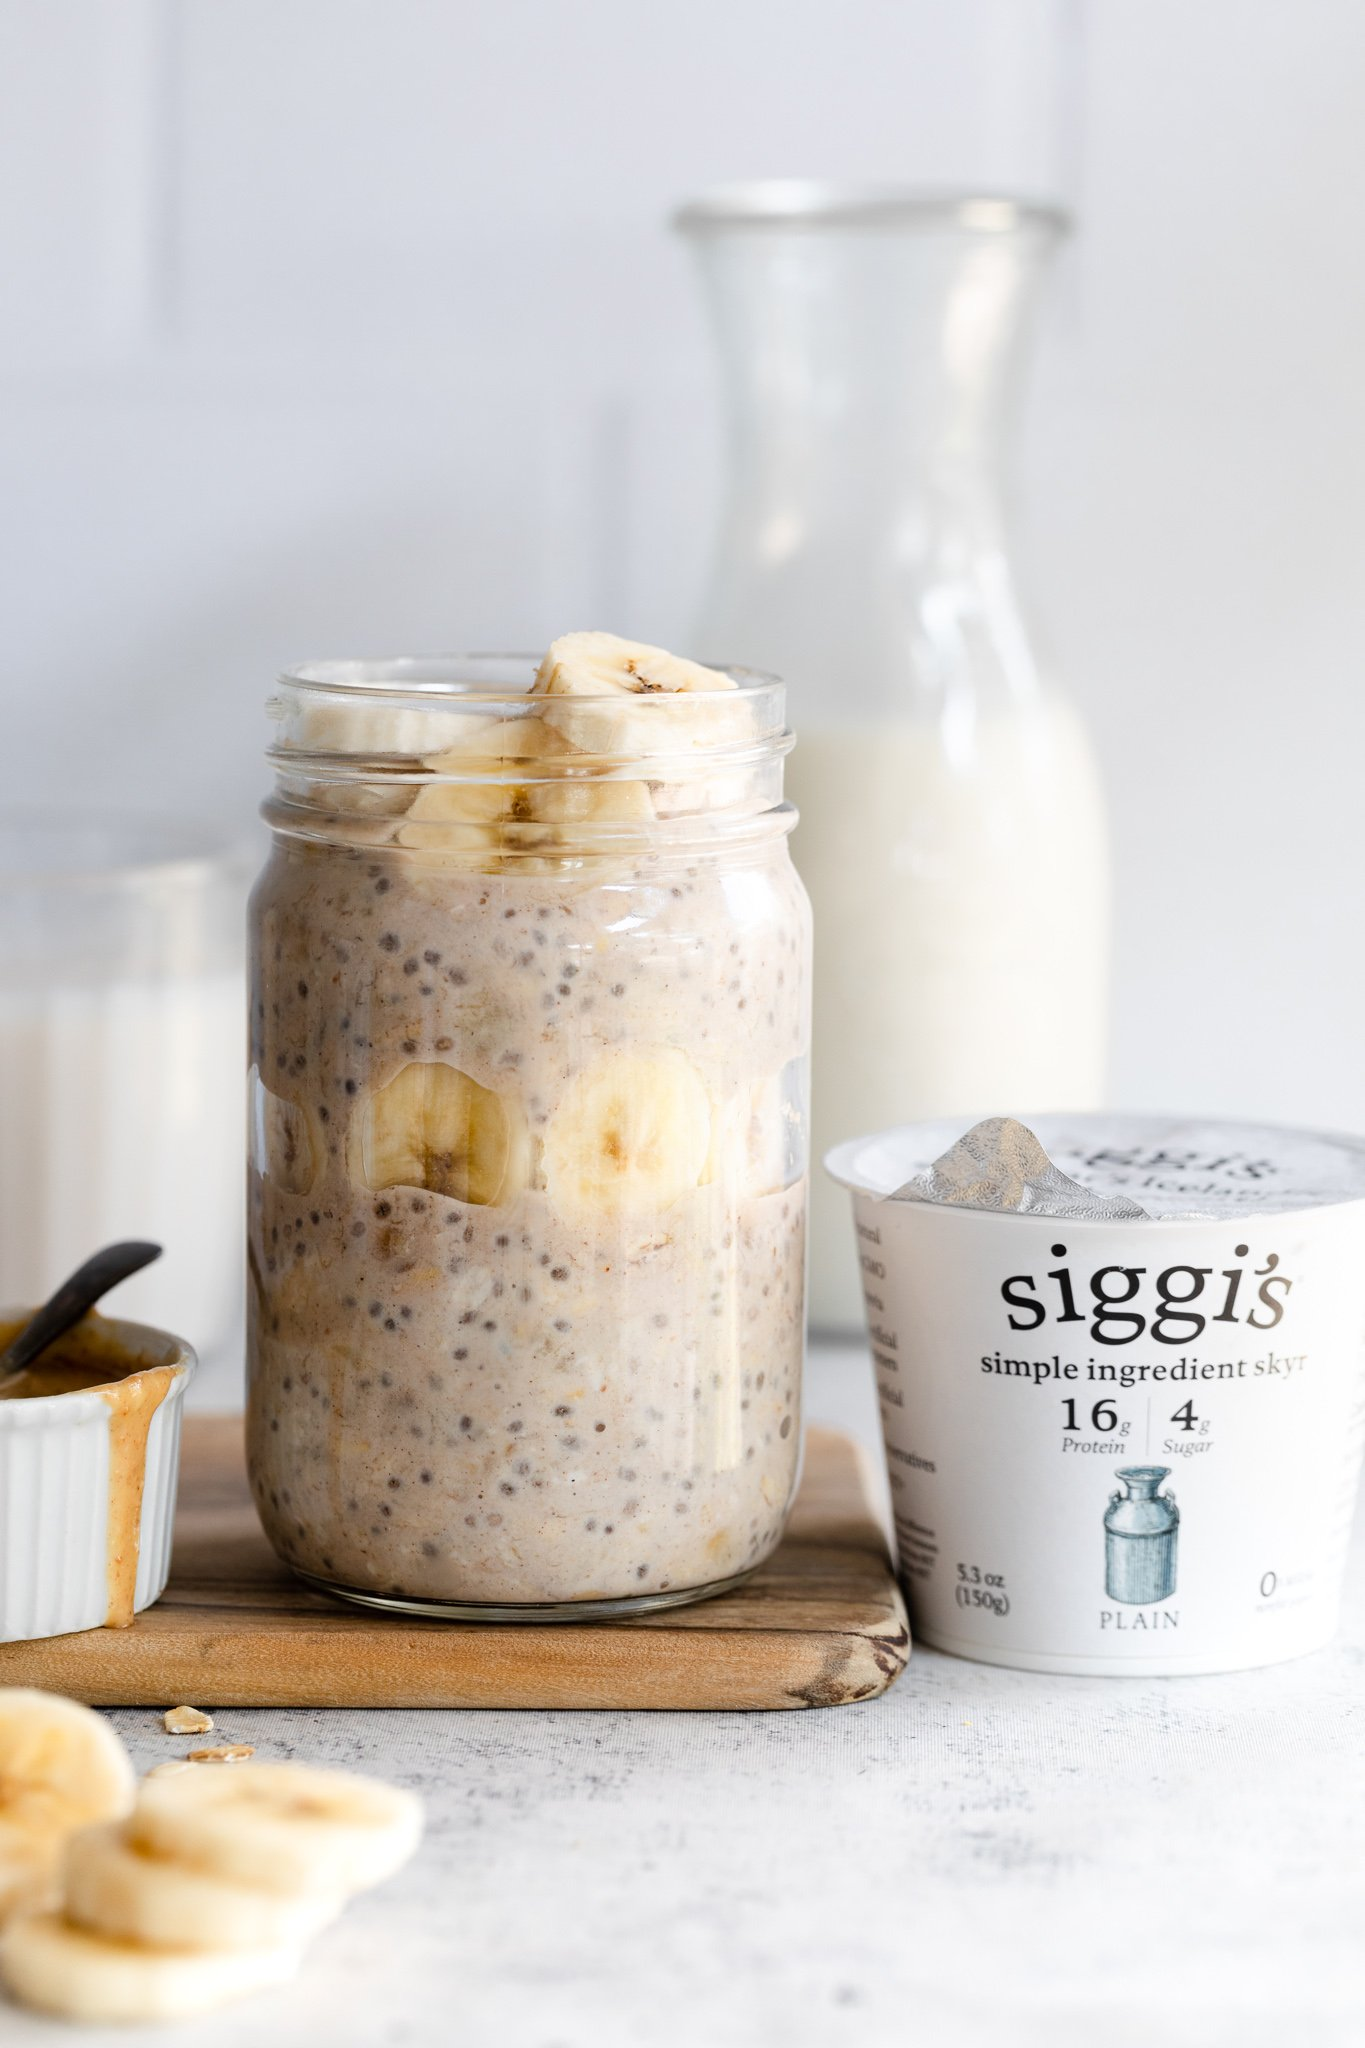 peanut butter banana overnight oats in a jar next to a container of yogurt